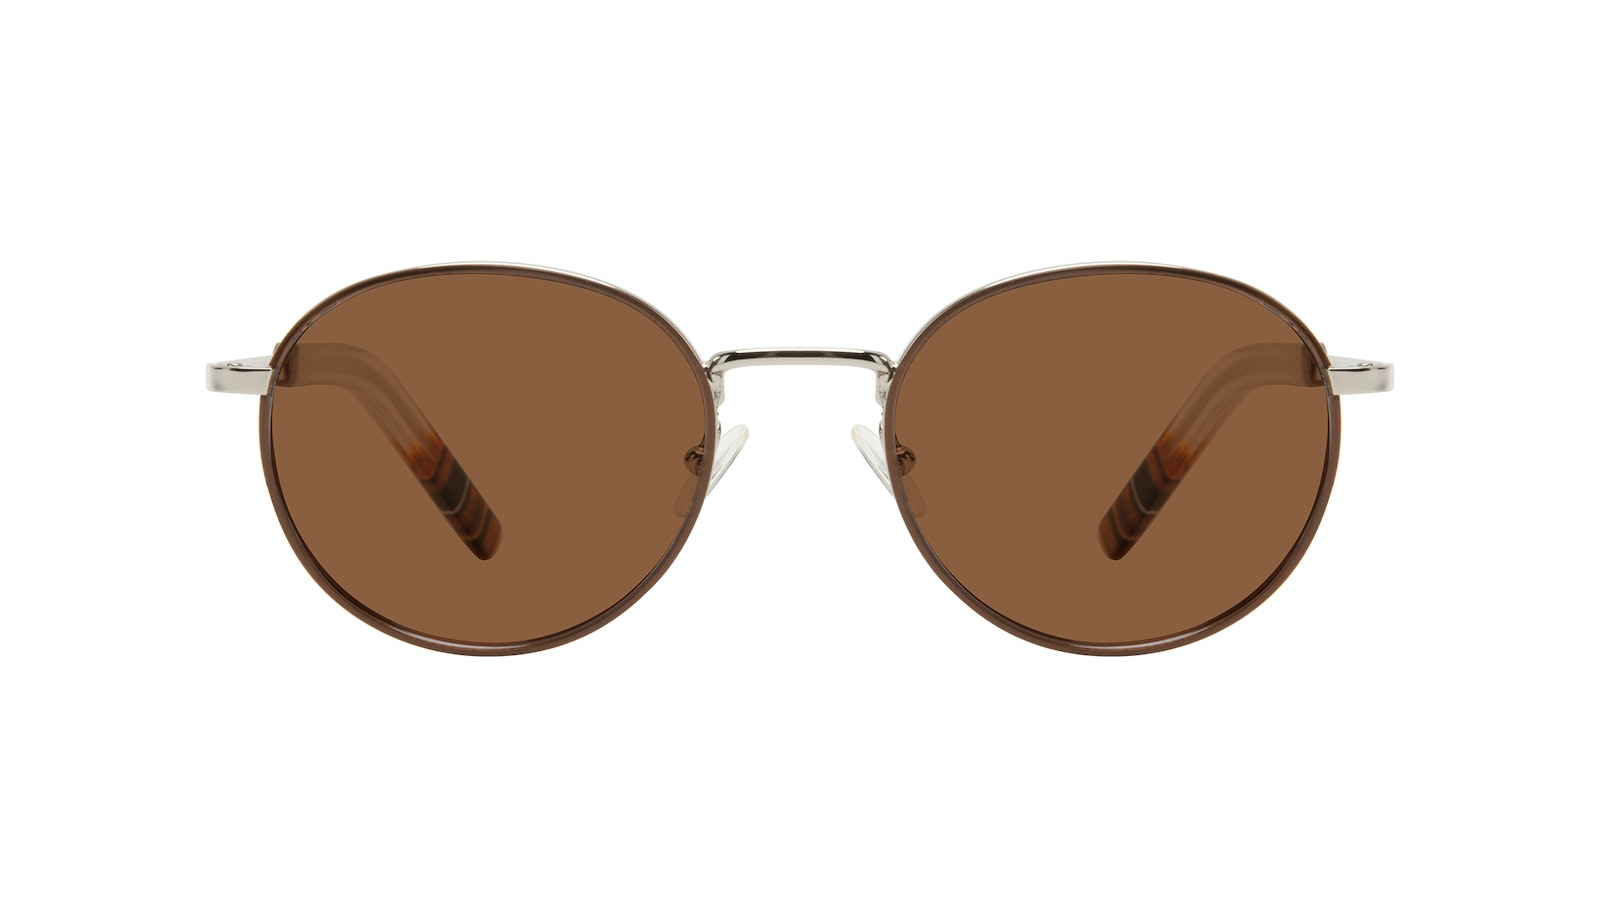 Affordable Fashion Glasses Round Sunglasses Men Reach Brown Steel